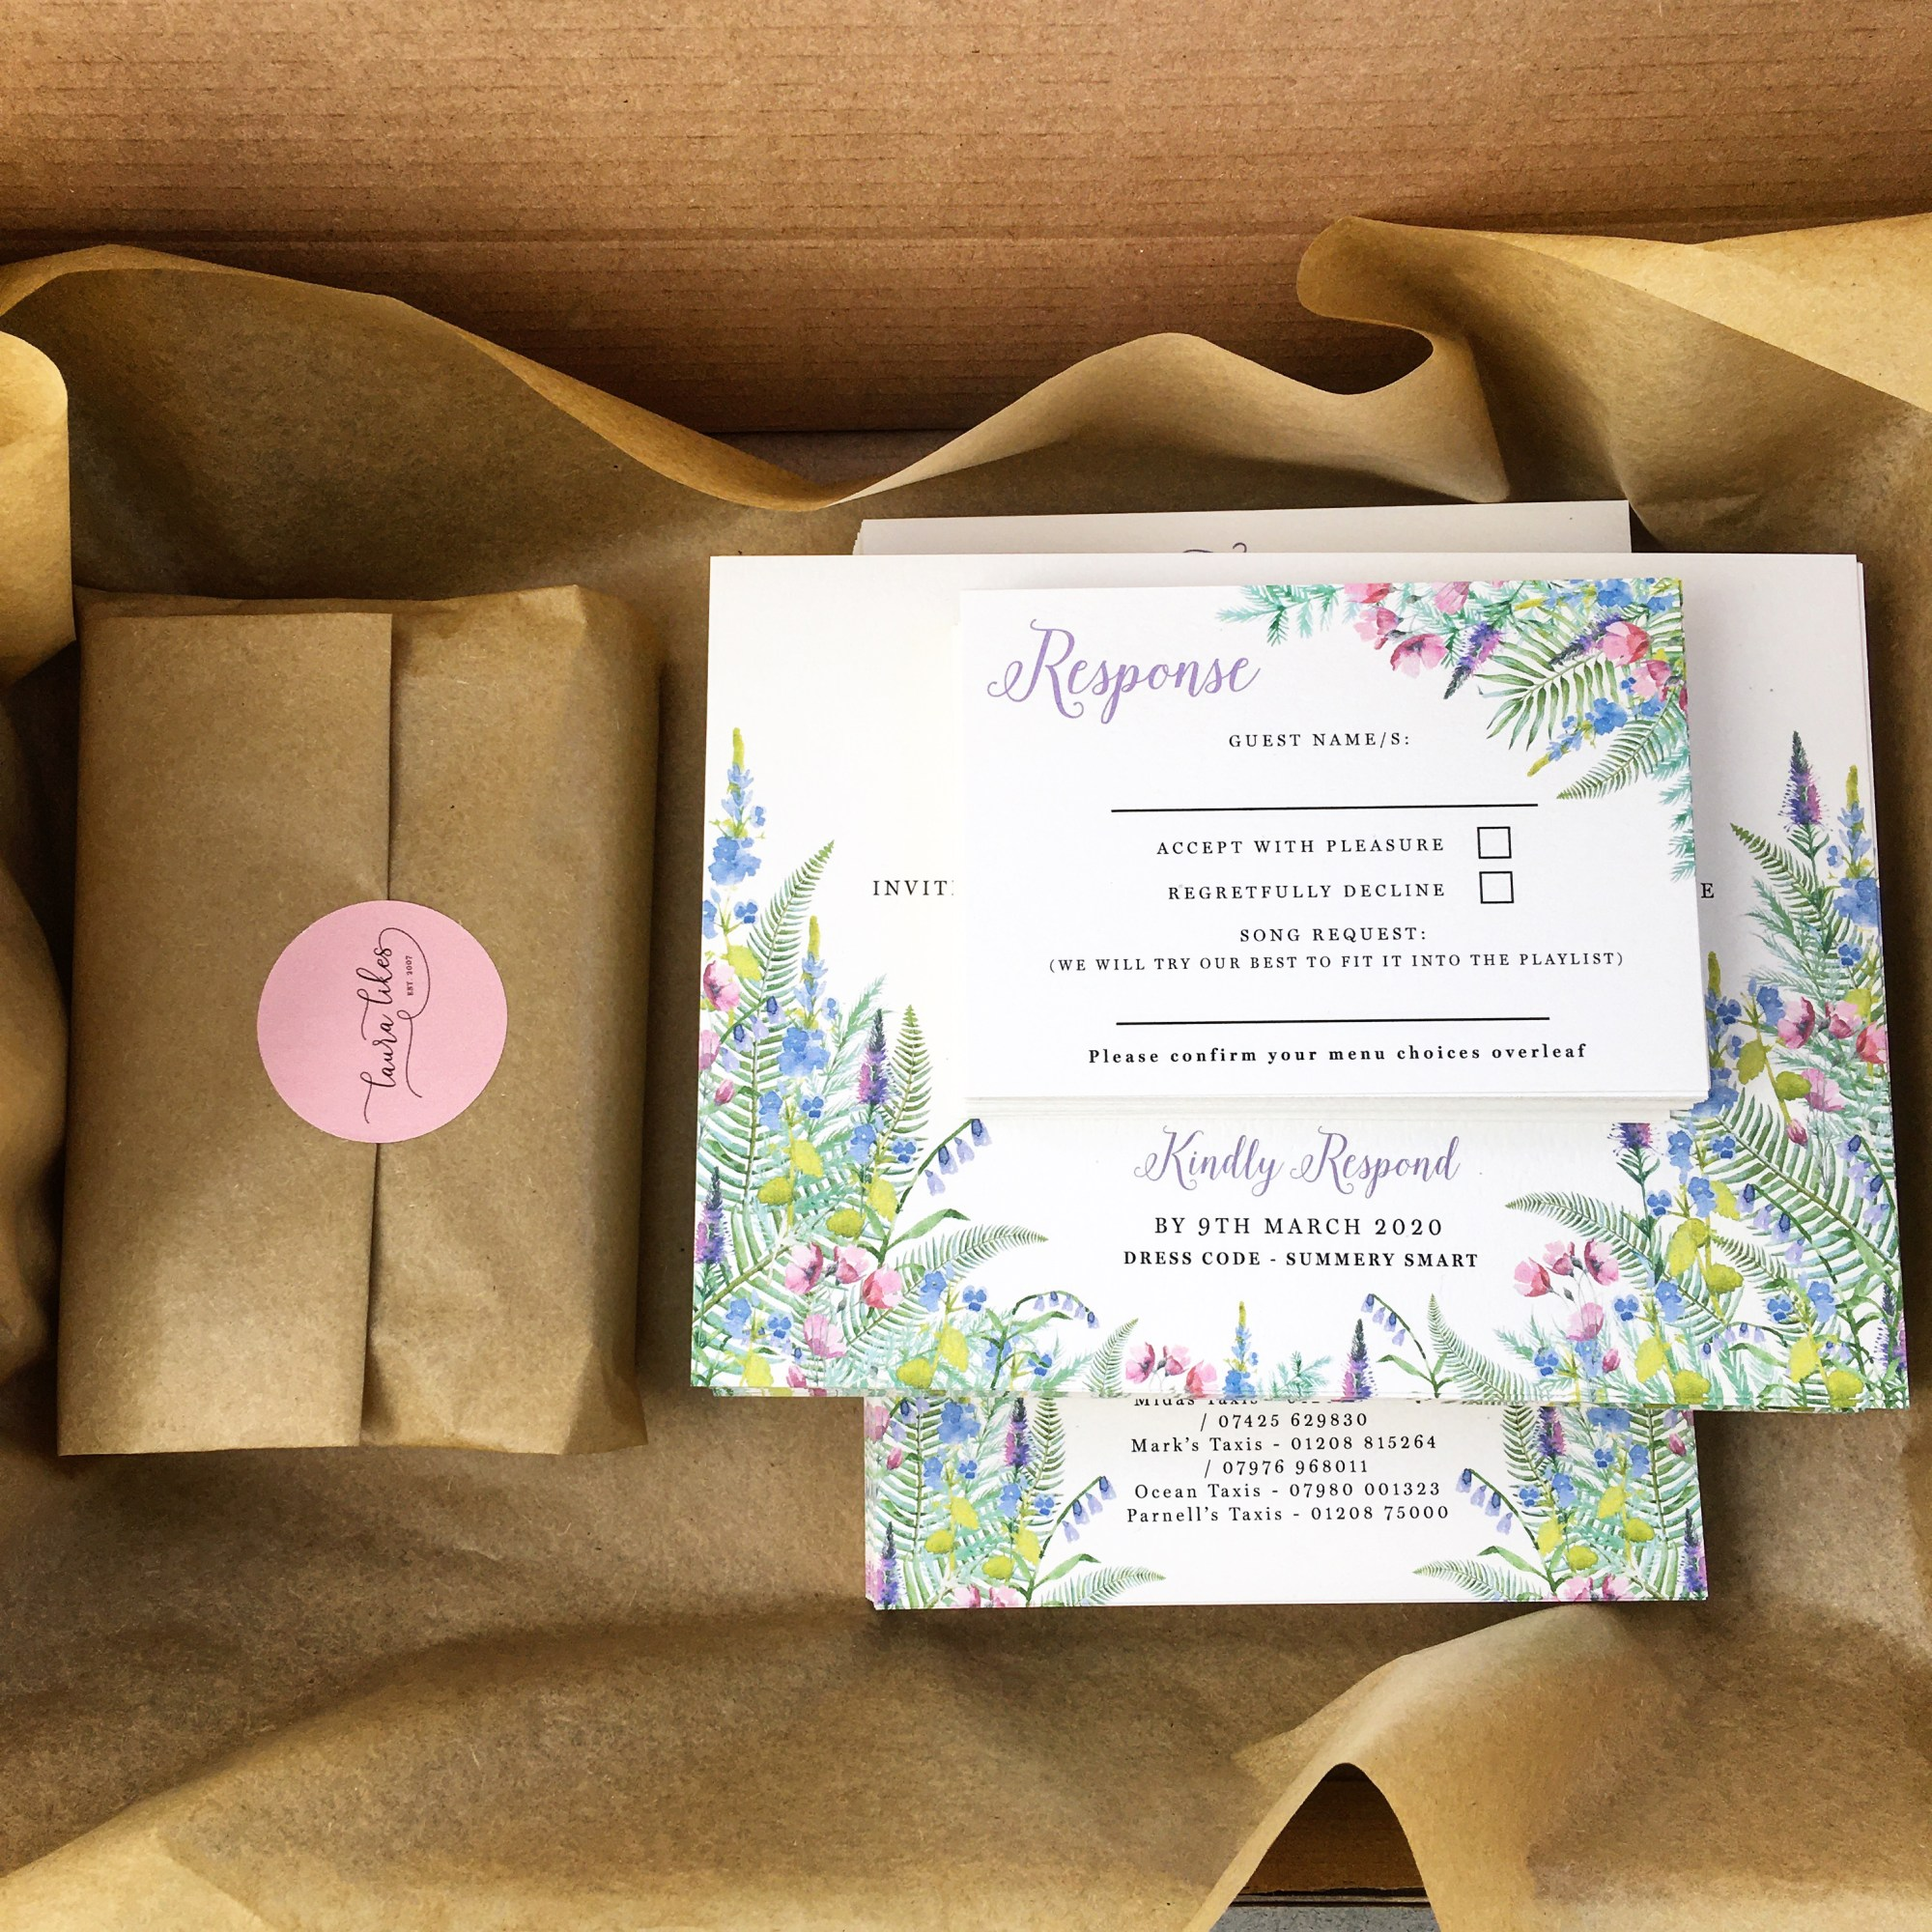 bluebells, woodland, wood, woods, bluebell, ferns, fern, wild, simple, foliage, green, pink, purple, wedding, invitation, invites, invitations, eco, recycled, Cornwall, Cornish, stationery, Laura Likes